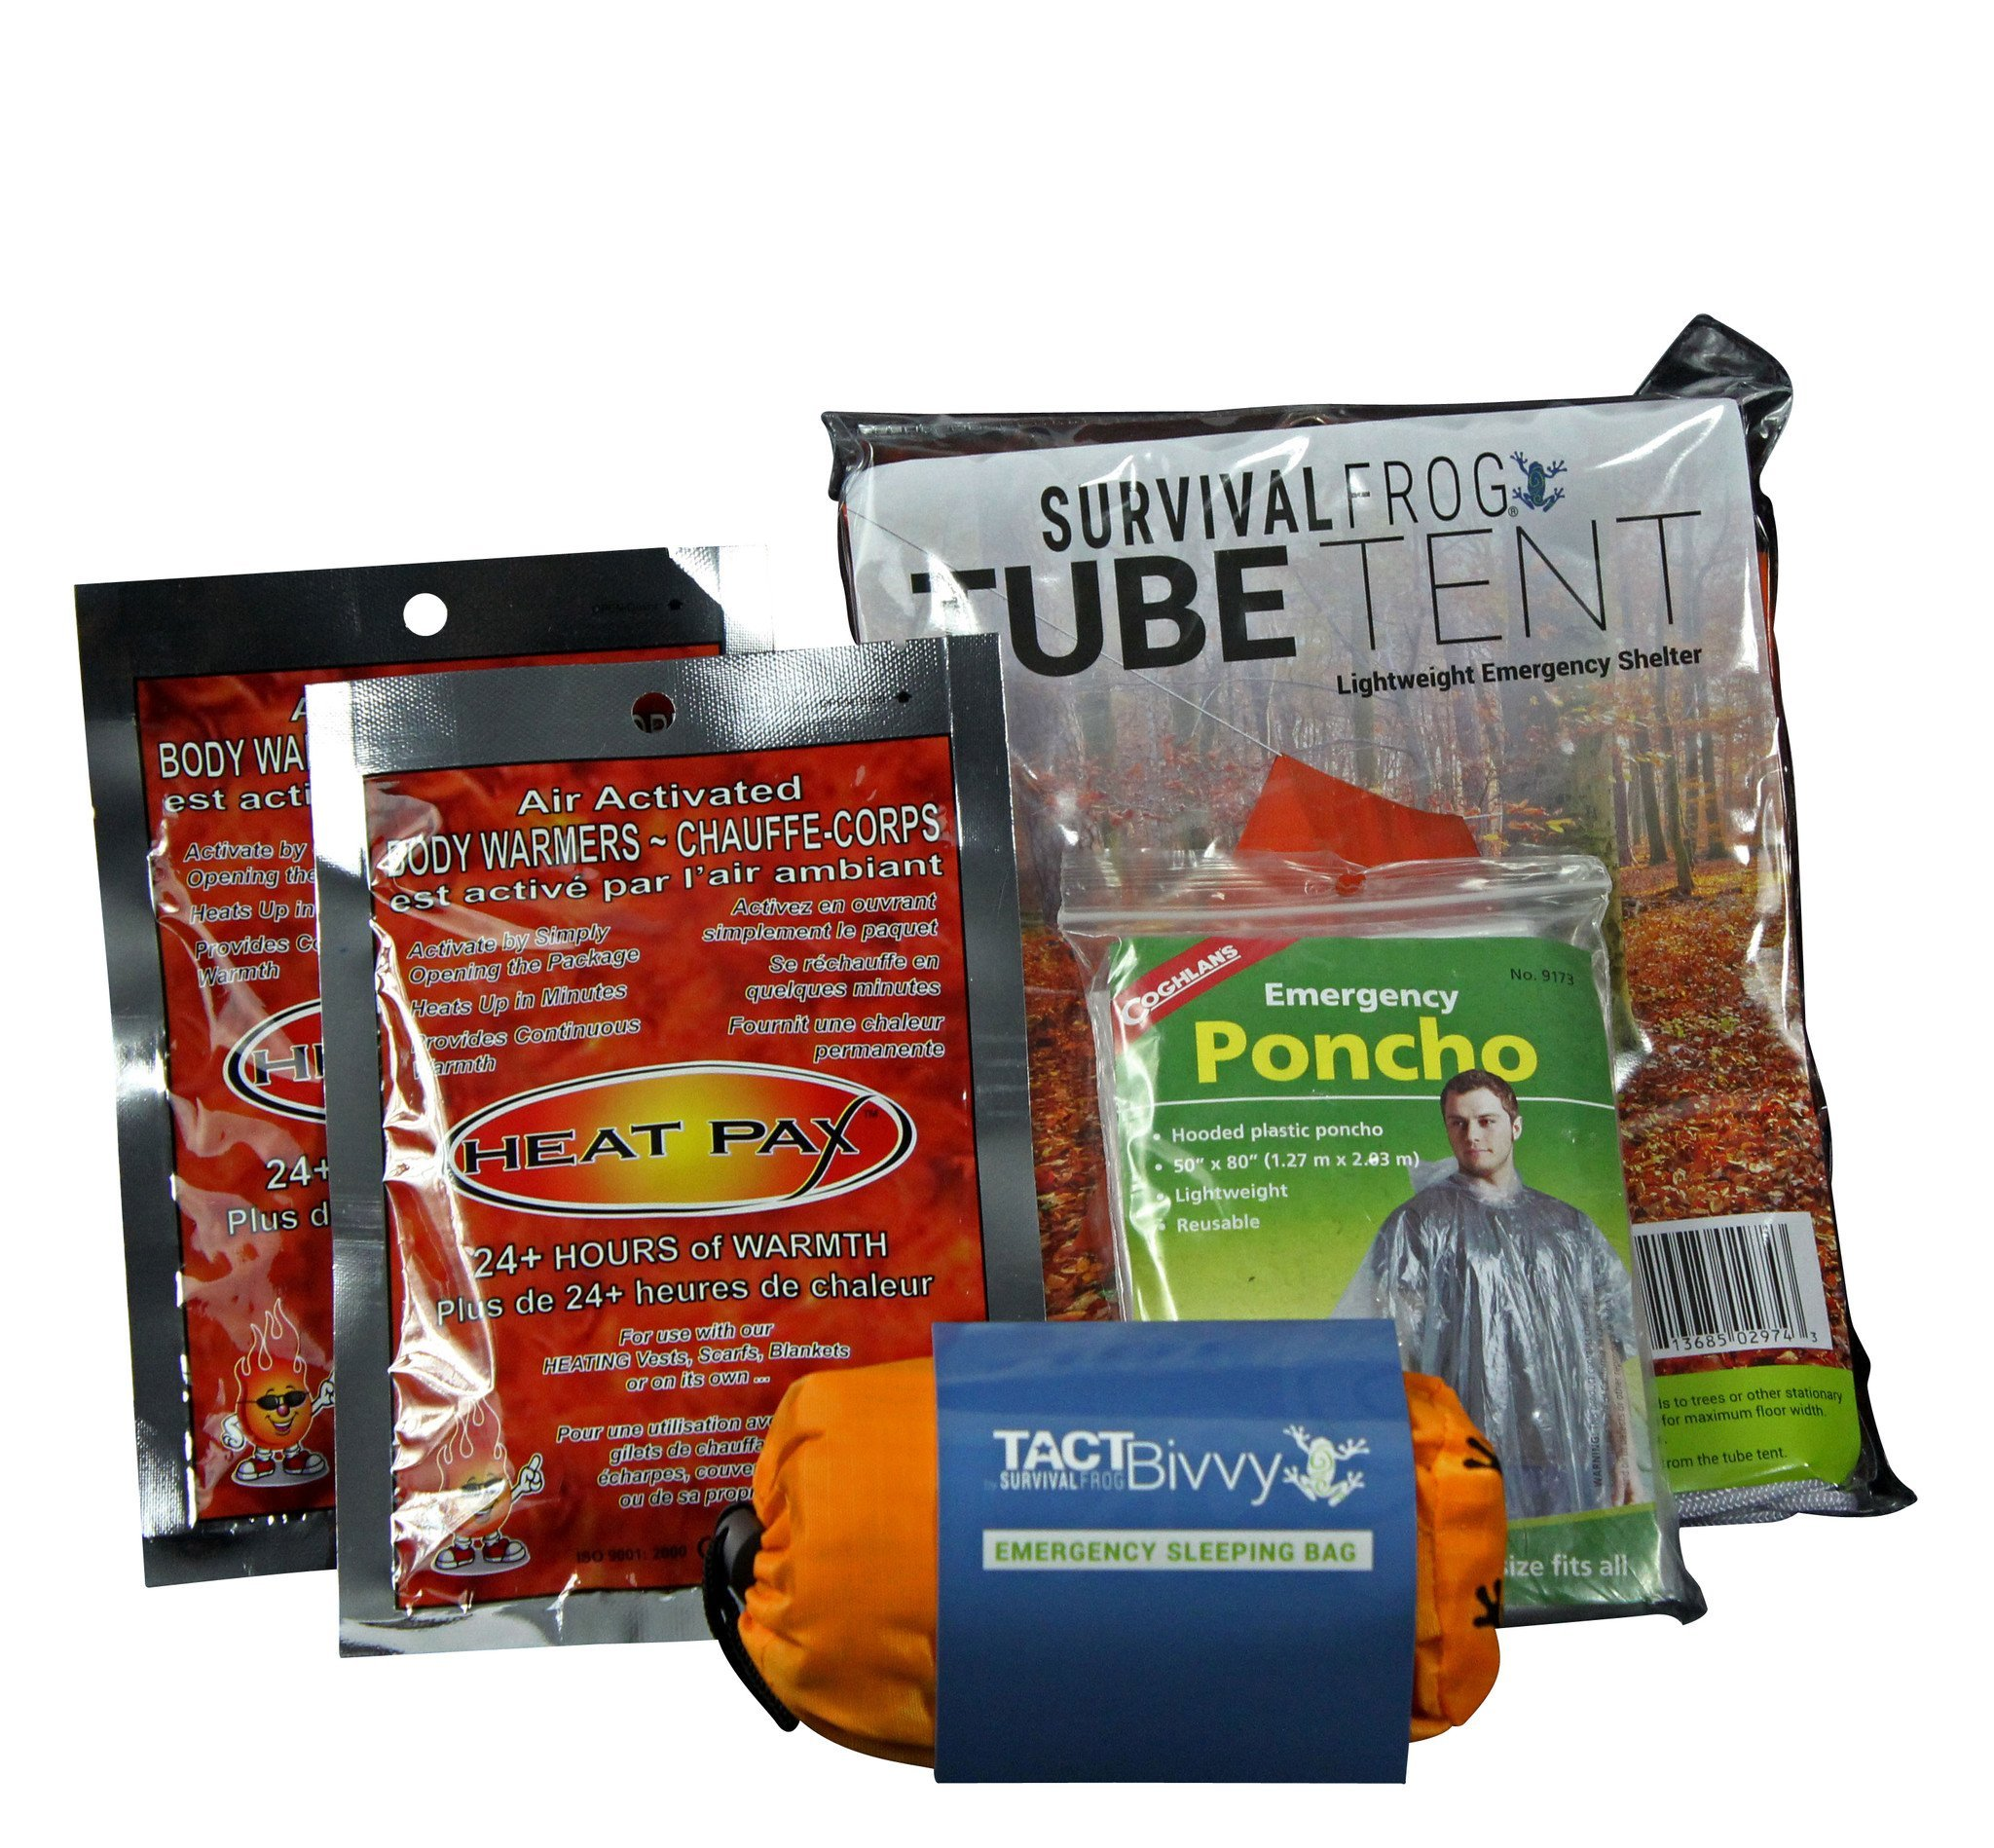 Survival Frog Warmth & Outdoor Shelter Kit